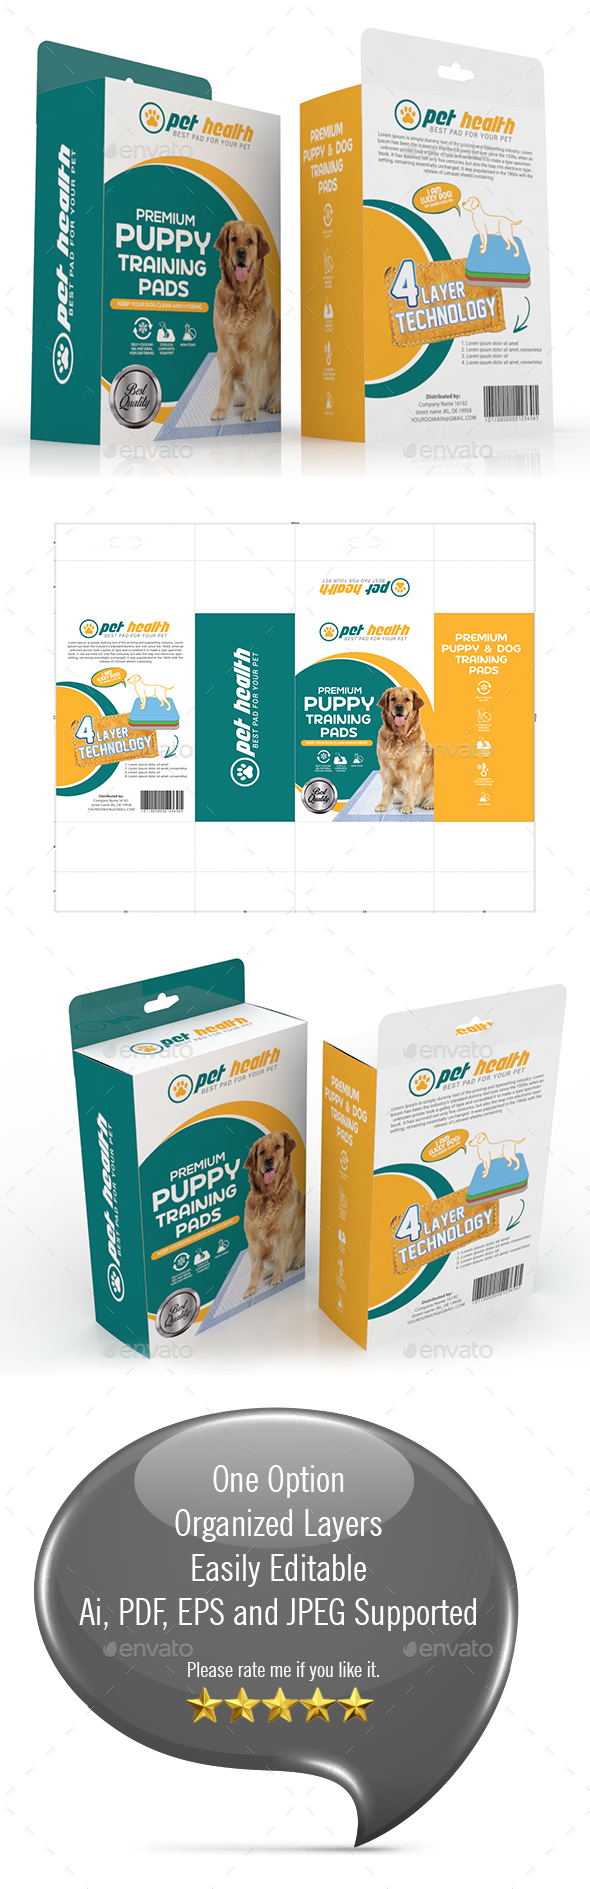 Dog Training Pad Packaging Template - Packaging Print Templates